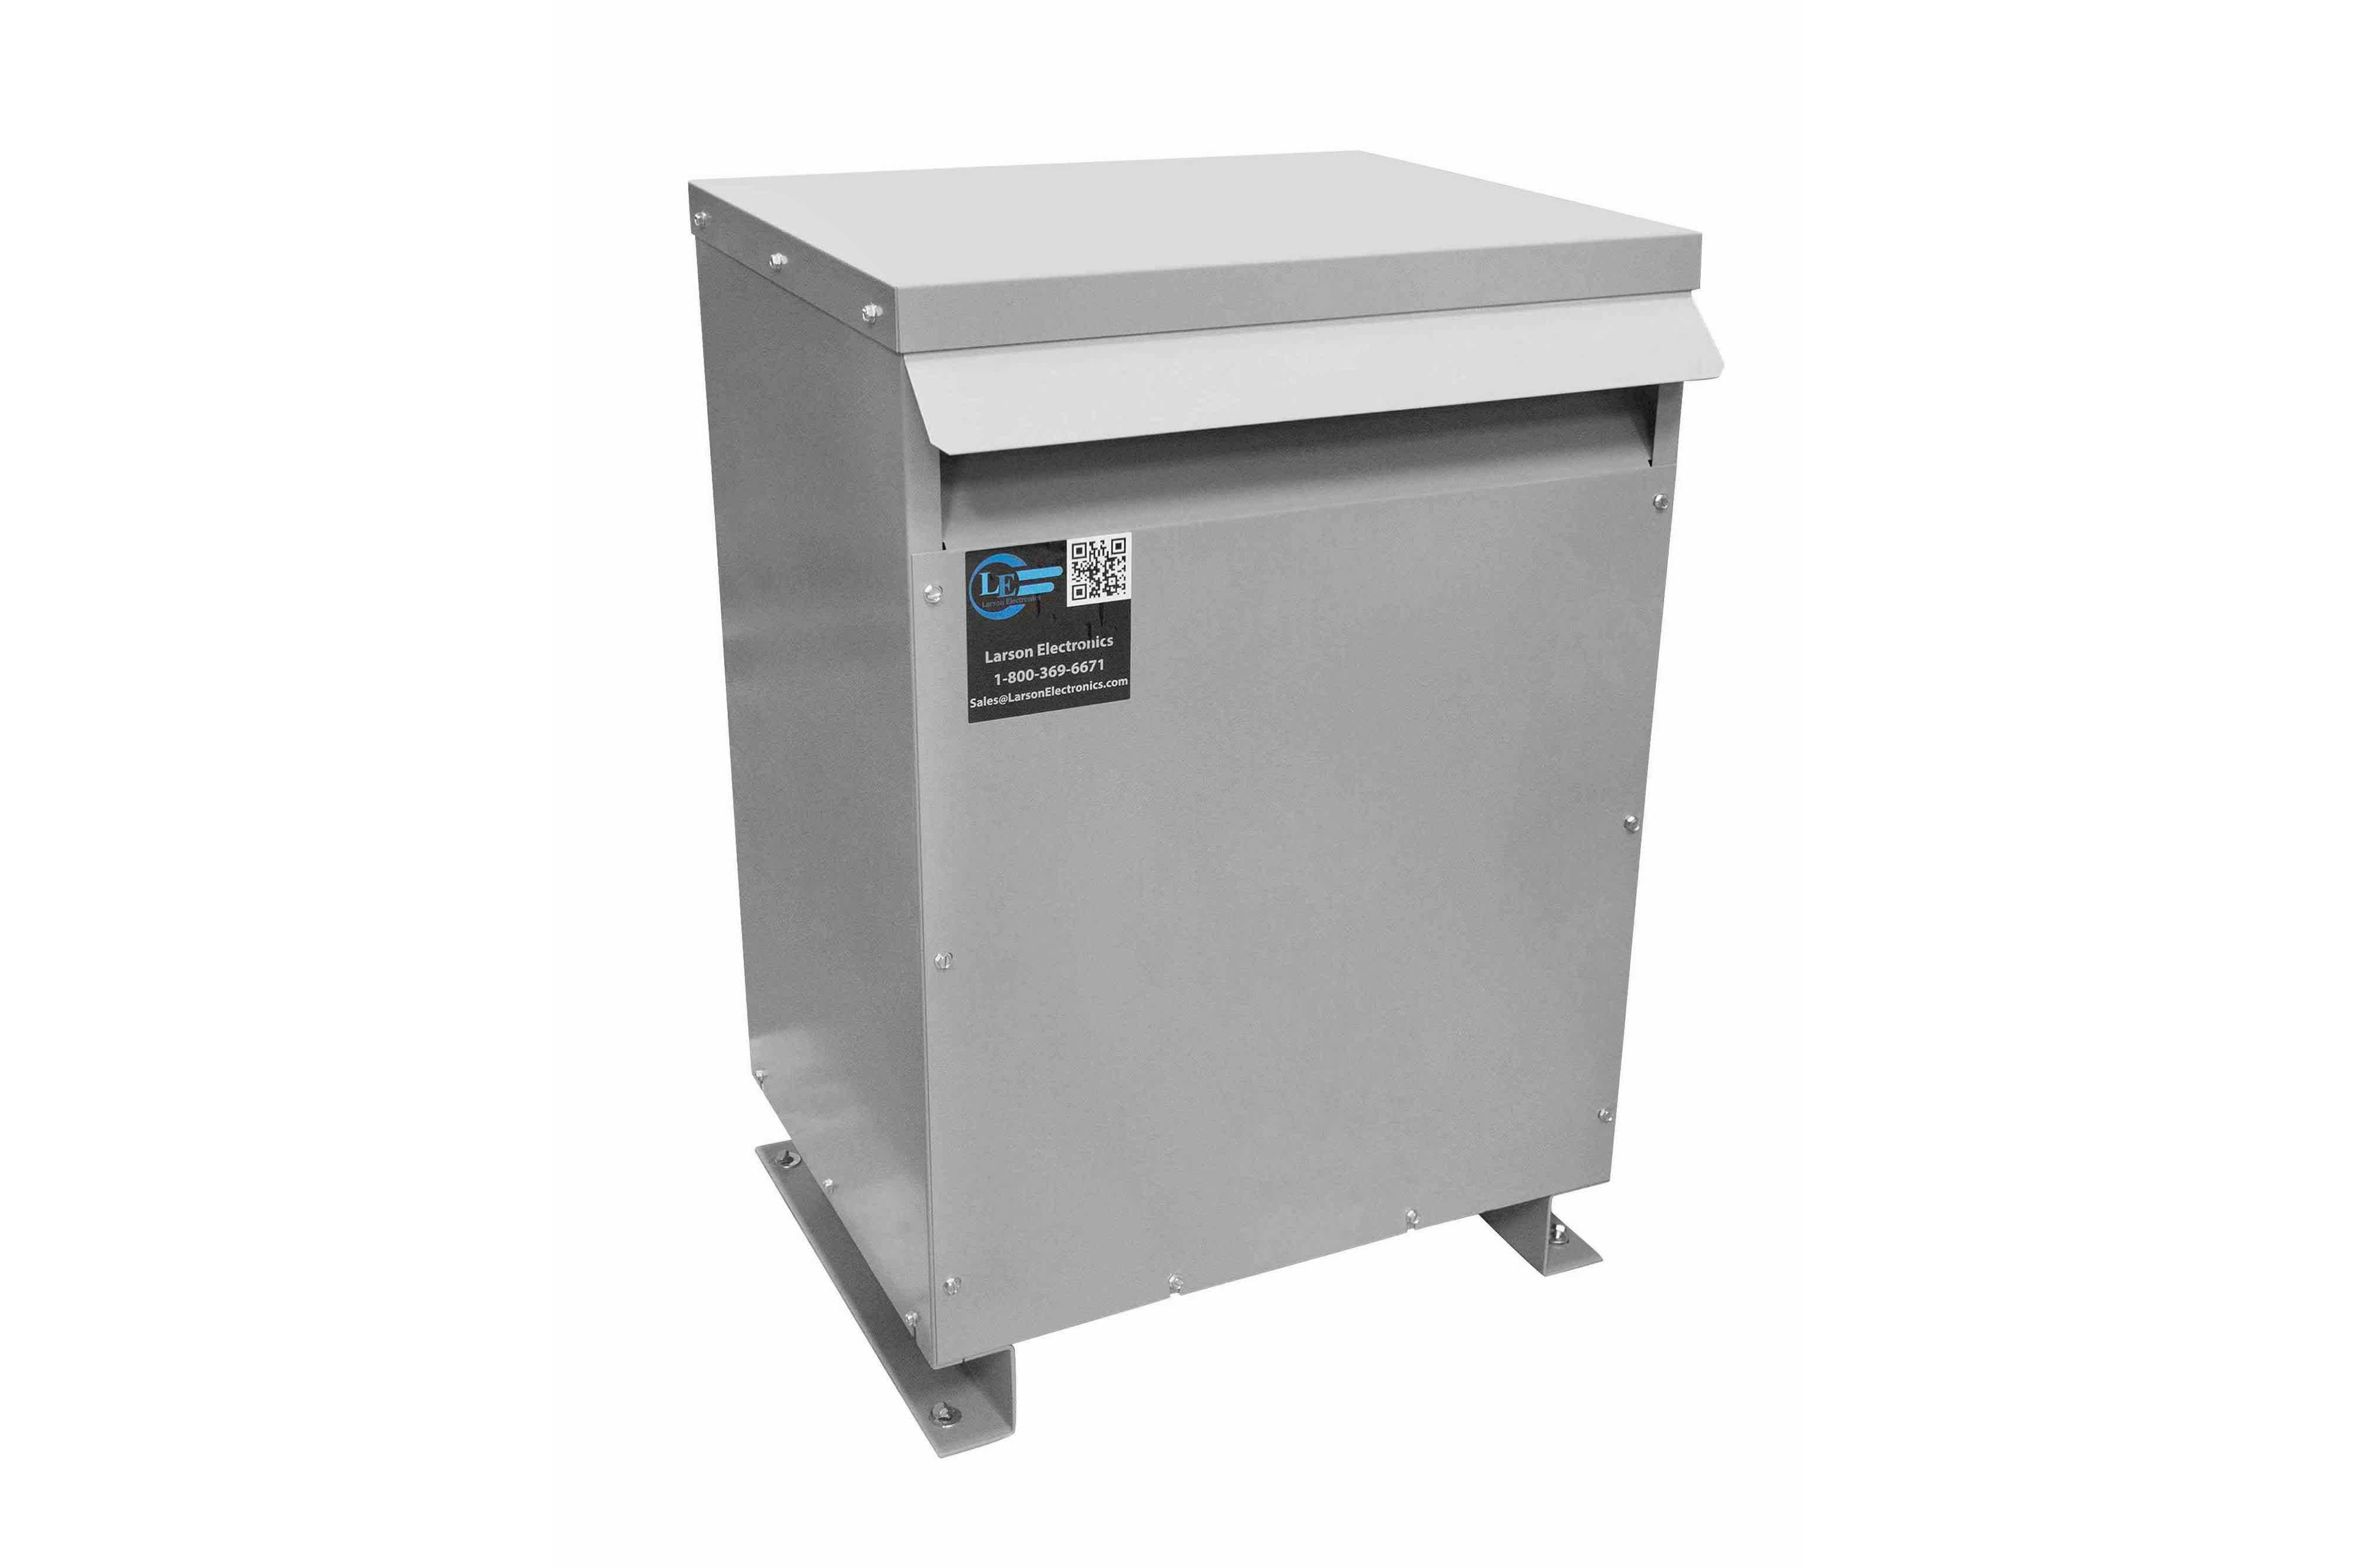 29 kVA 3PH Isolation Transformer, 600V Wye Primary, 400Y/231 Wye-N Secondary, N3R, Ventilated, 60 Hz